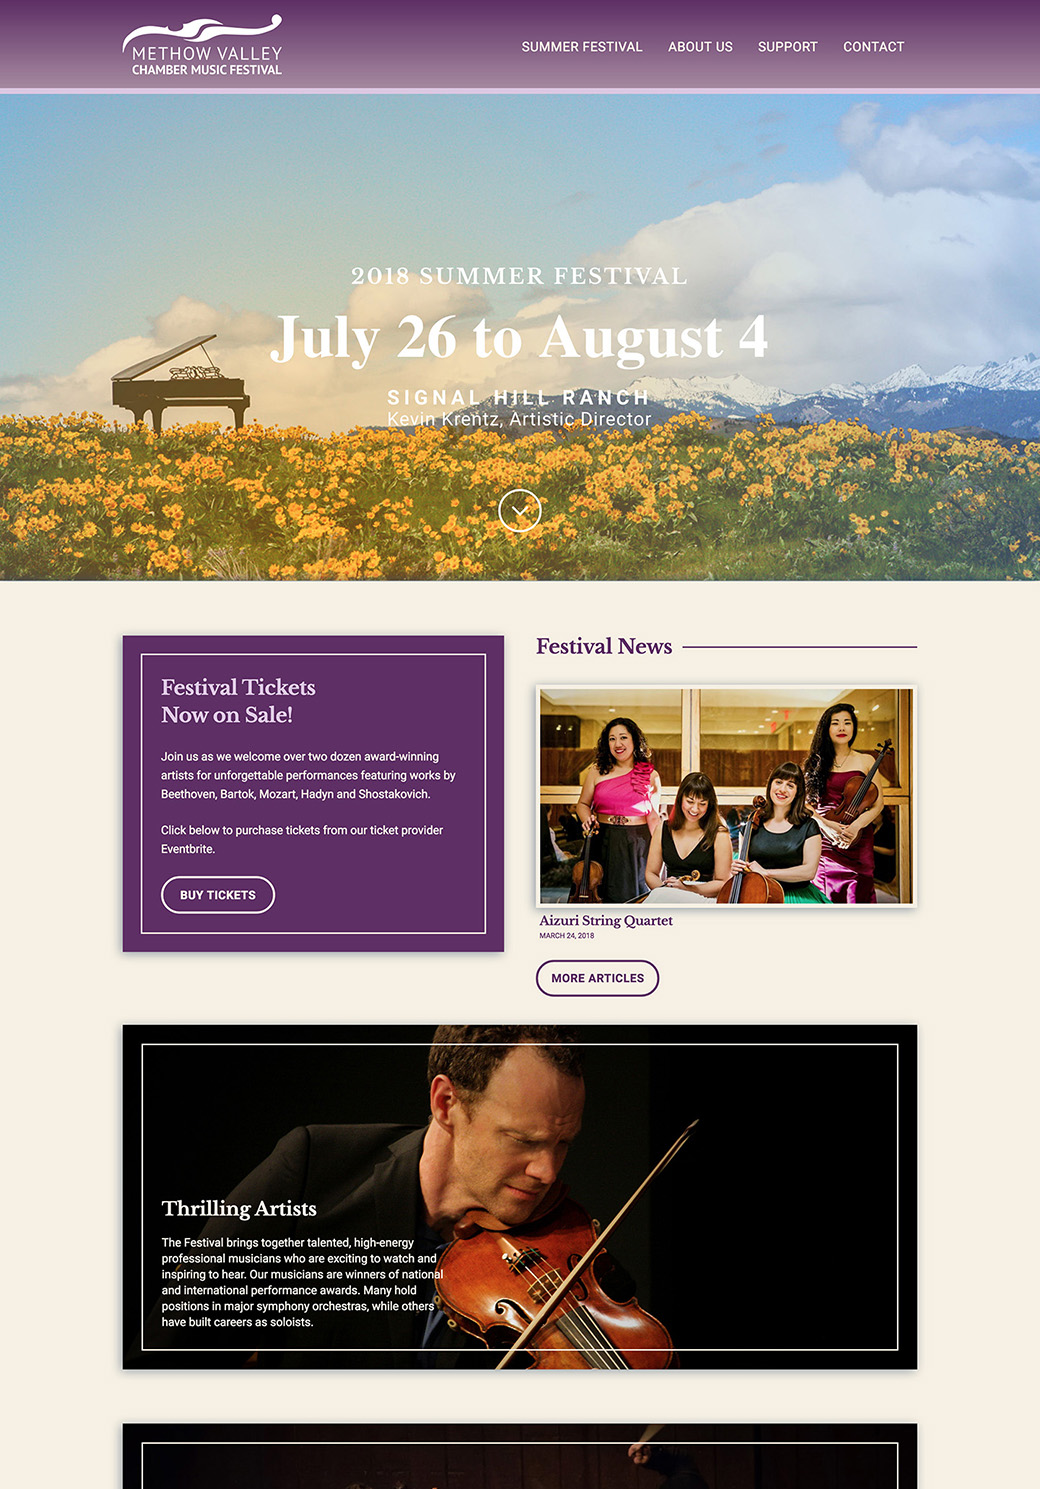 Methow Valley Chamber Music Festival Homepage